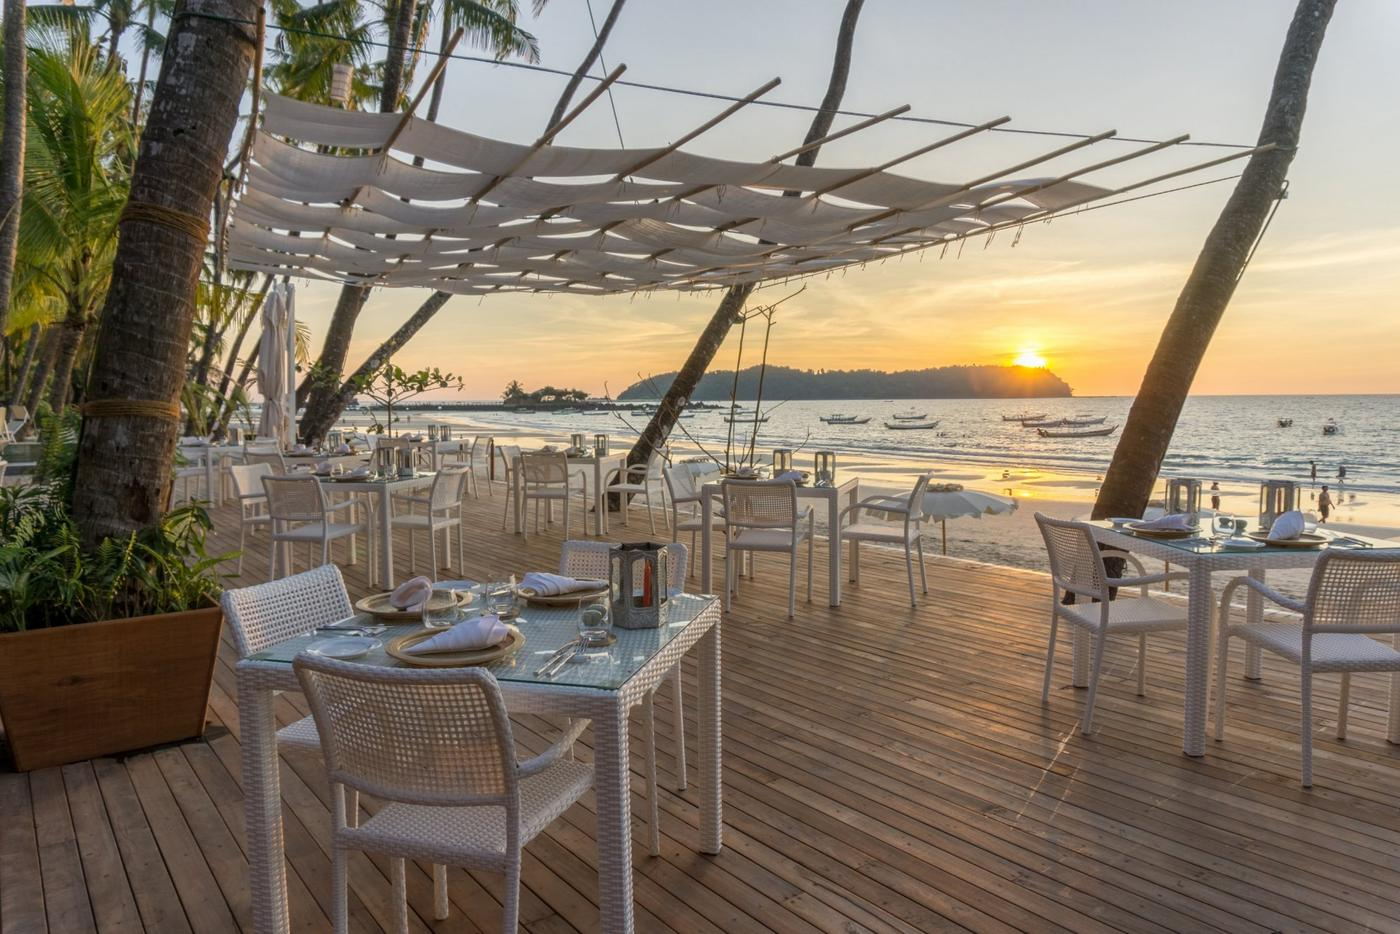 Restaurant decking, Art of Sand Resort